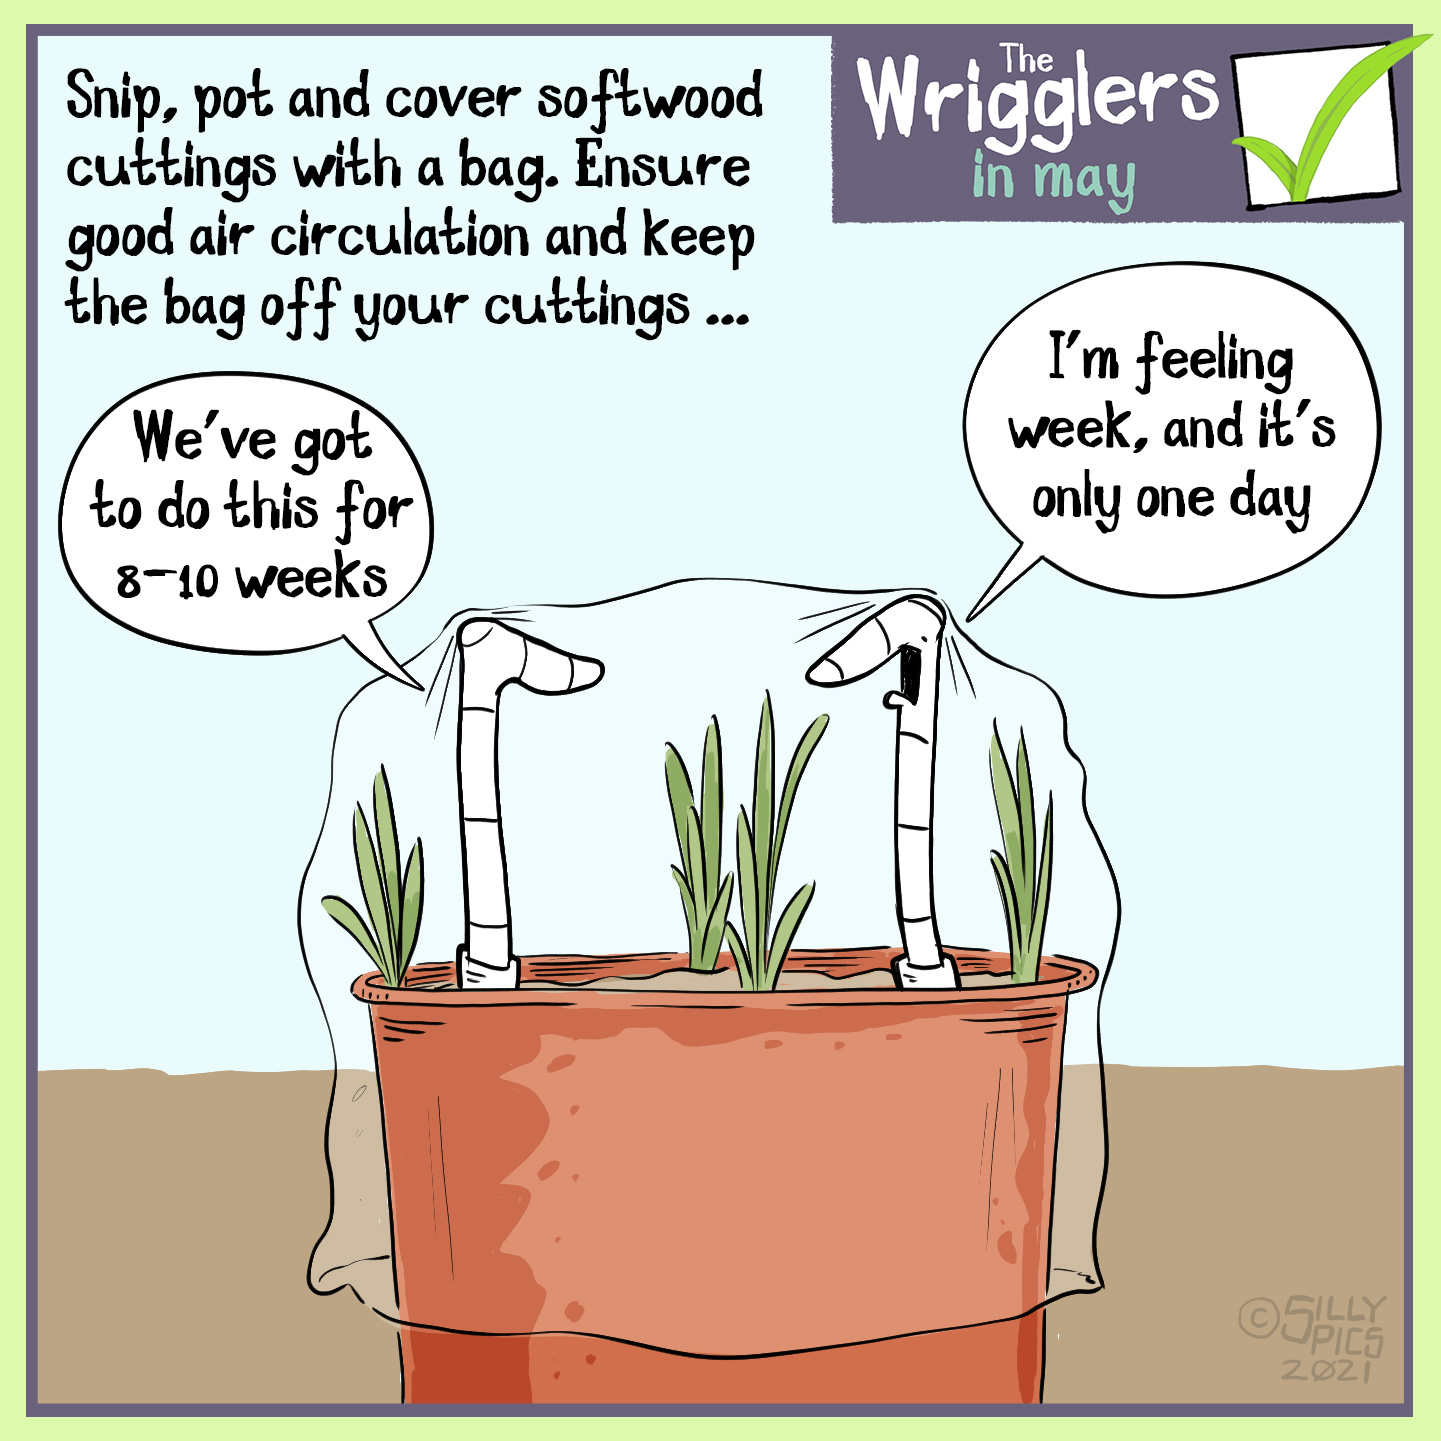 """Snip, pot and cover softwood cuttings with a bag. Ensure good air circulation and keep the bag off your cuttings … The image shows two worms in a pot with cuttings, it is covered with a plastic bag … the two worms are supporting the plastic bag to keep it off the cuttings. One worm says, """"We've got to do this for 8-10 weeks The other work says, """" I'm feeling week and it's only one day"""""""